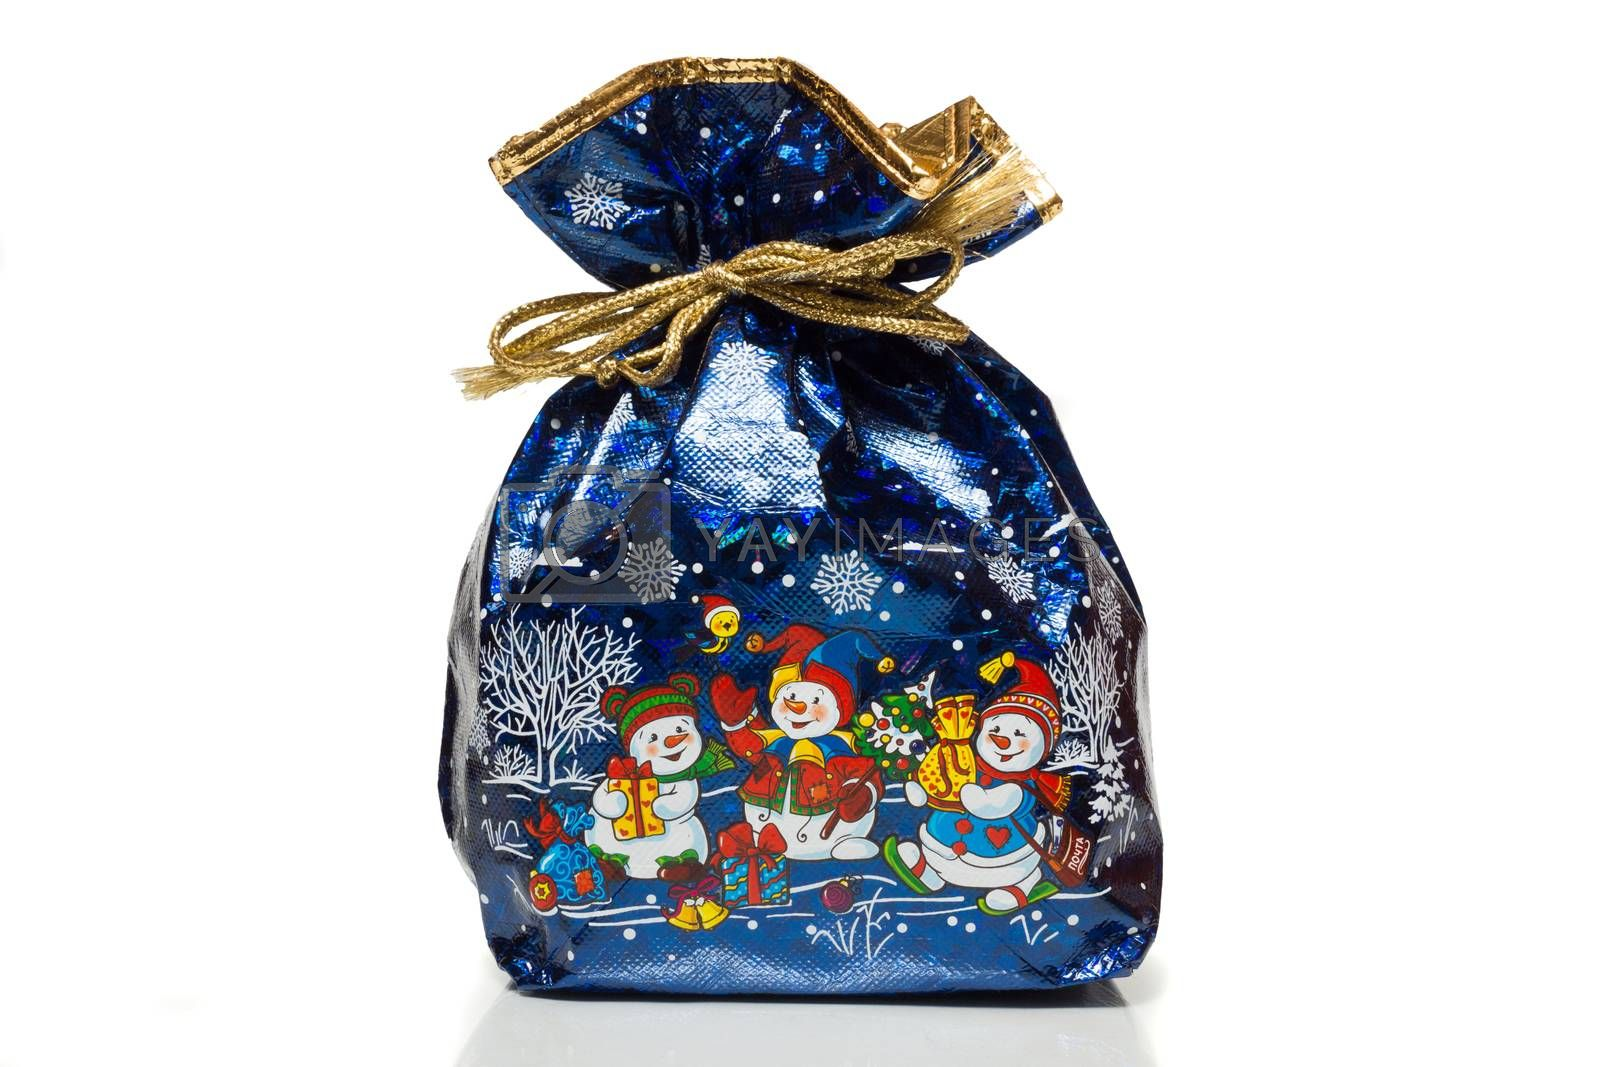 The photo depicts a bag with gifts